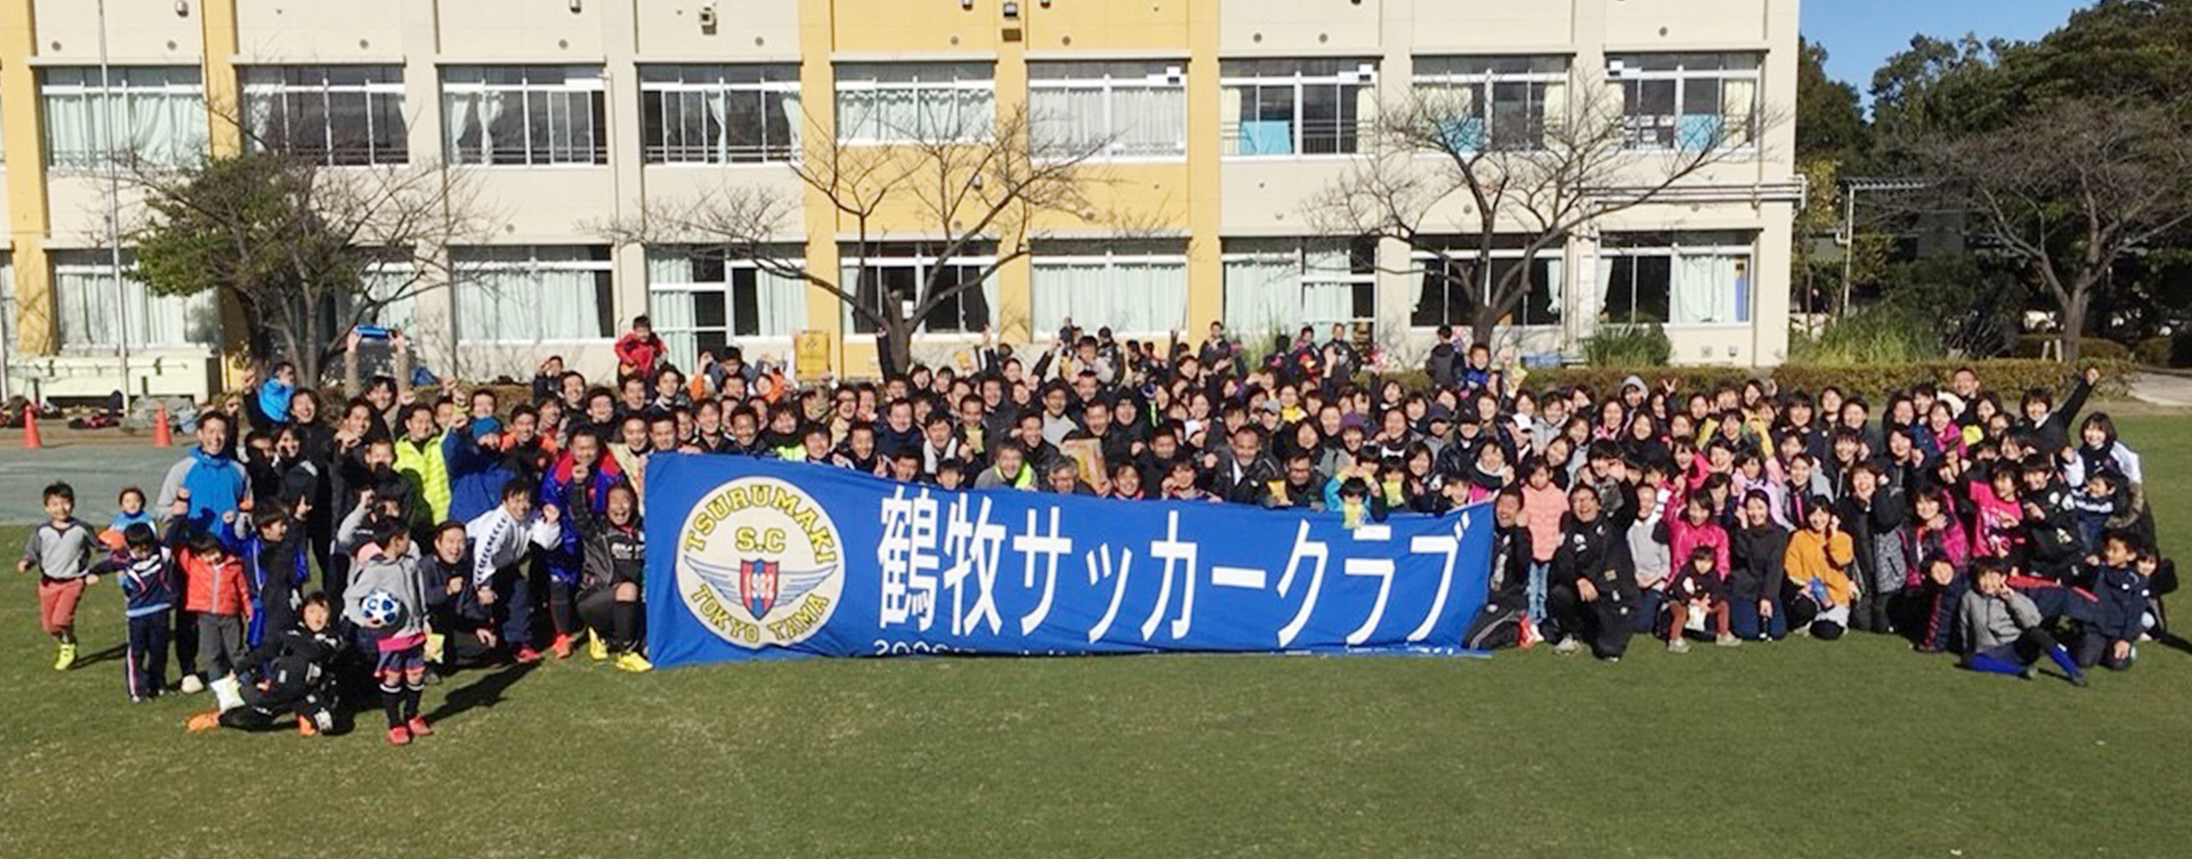 Welcome to TsurumakiSC